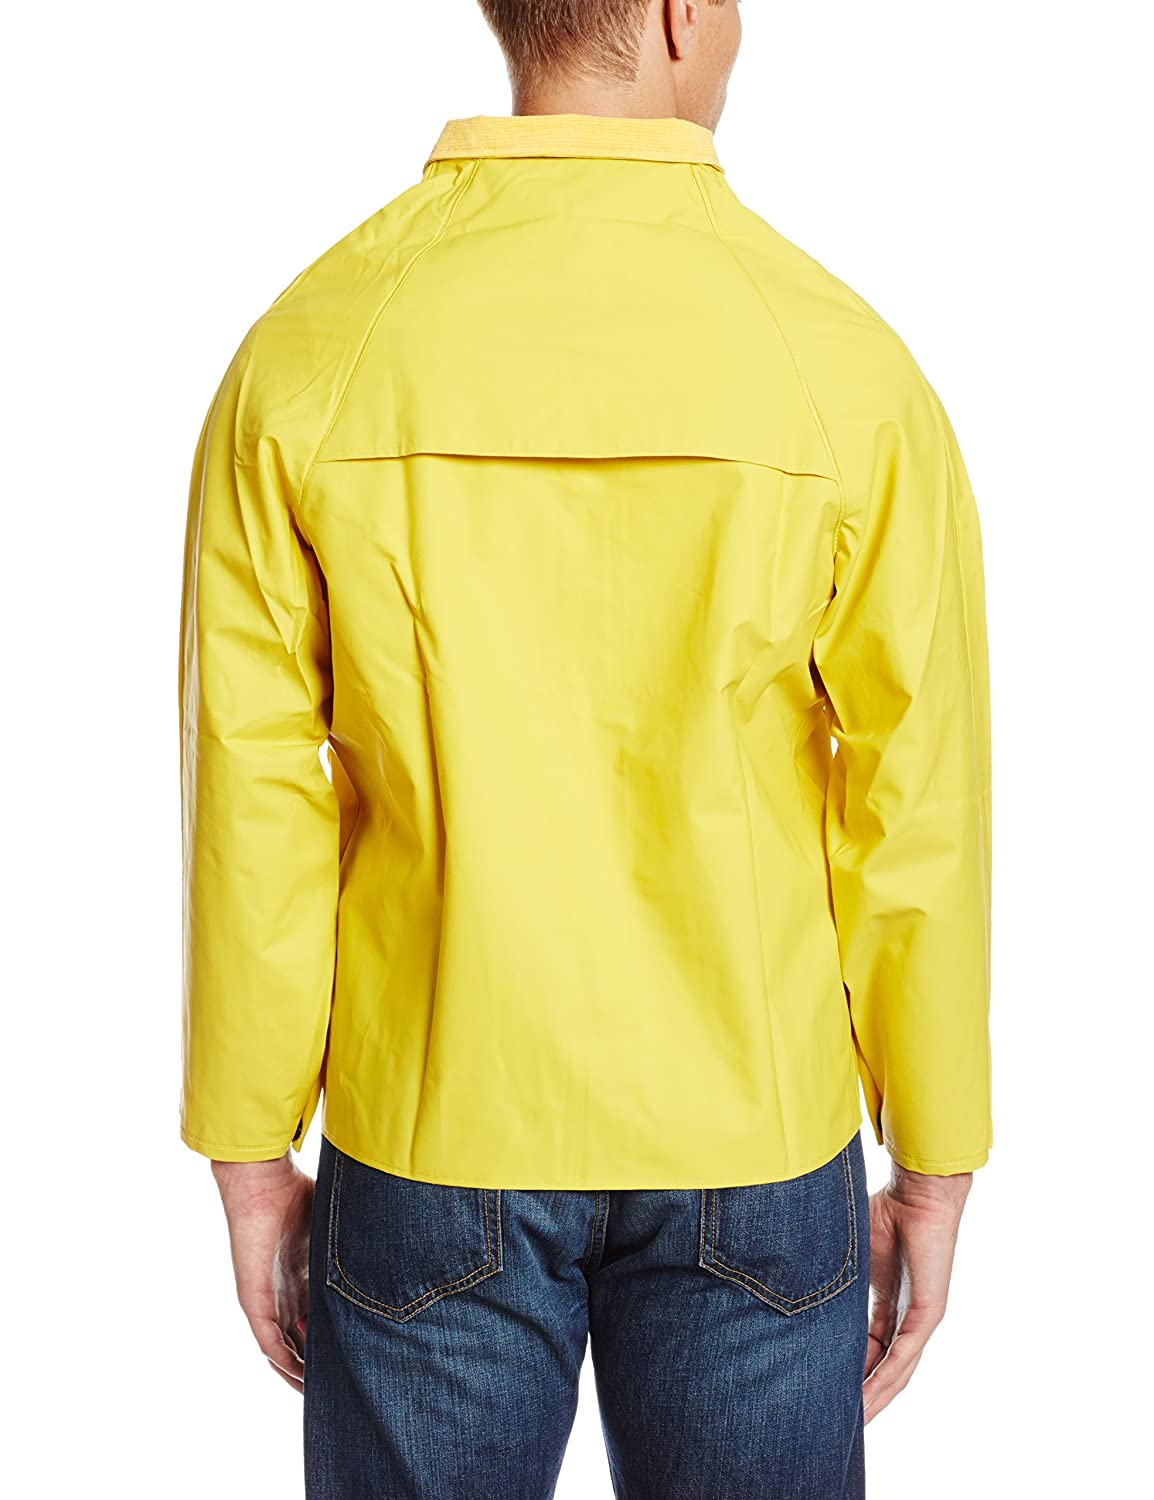 ONGUARD 76535 PVC on Polyester Sitex Jacket with Detachable Hood Size Small ONGUARD Industries